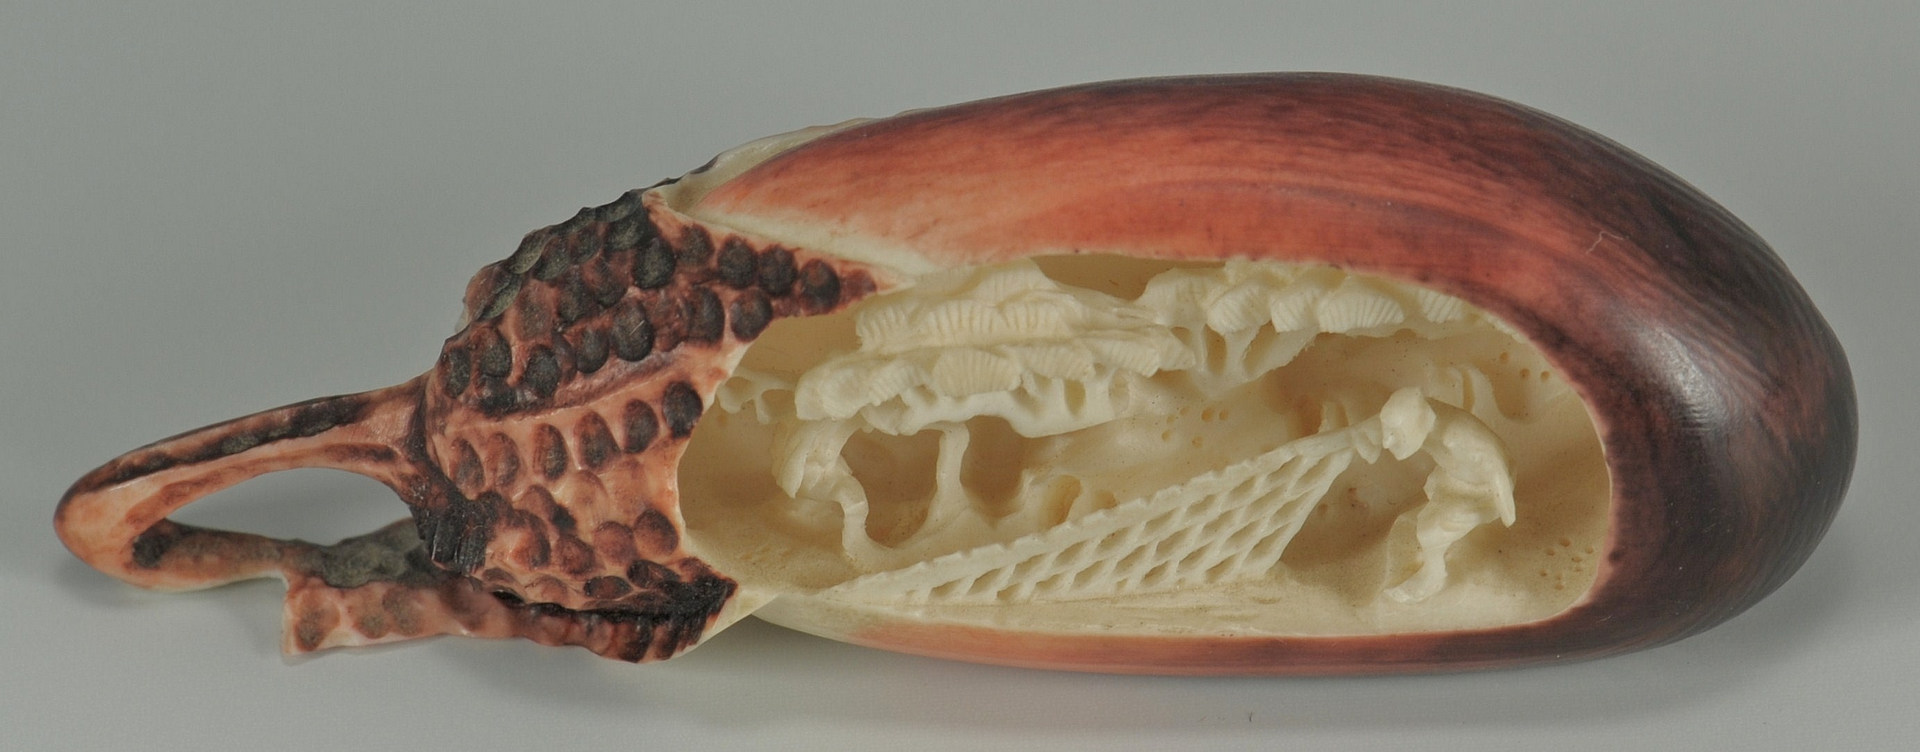 Lot 190: Japanese Ivory: Dragon Pistol Grips and Eggplant